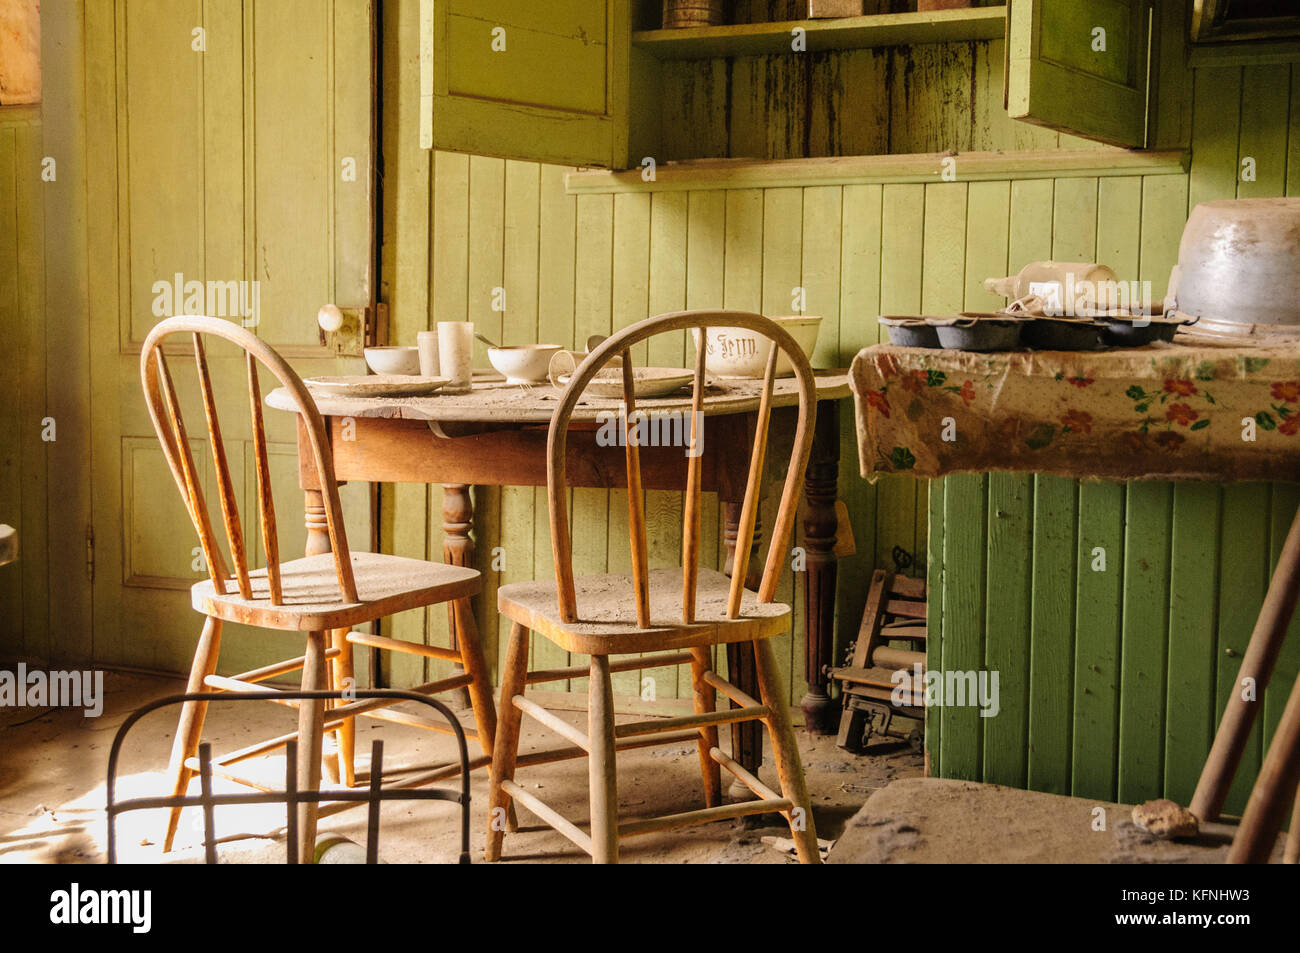 Admirable Interior Of An Old House Including Two Chairs And A Kitchen Download Free Architecture Designs Scobabritishbridgeorg